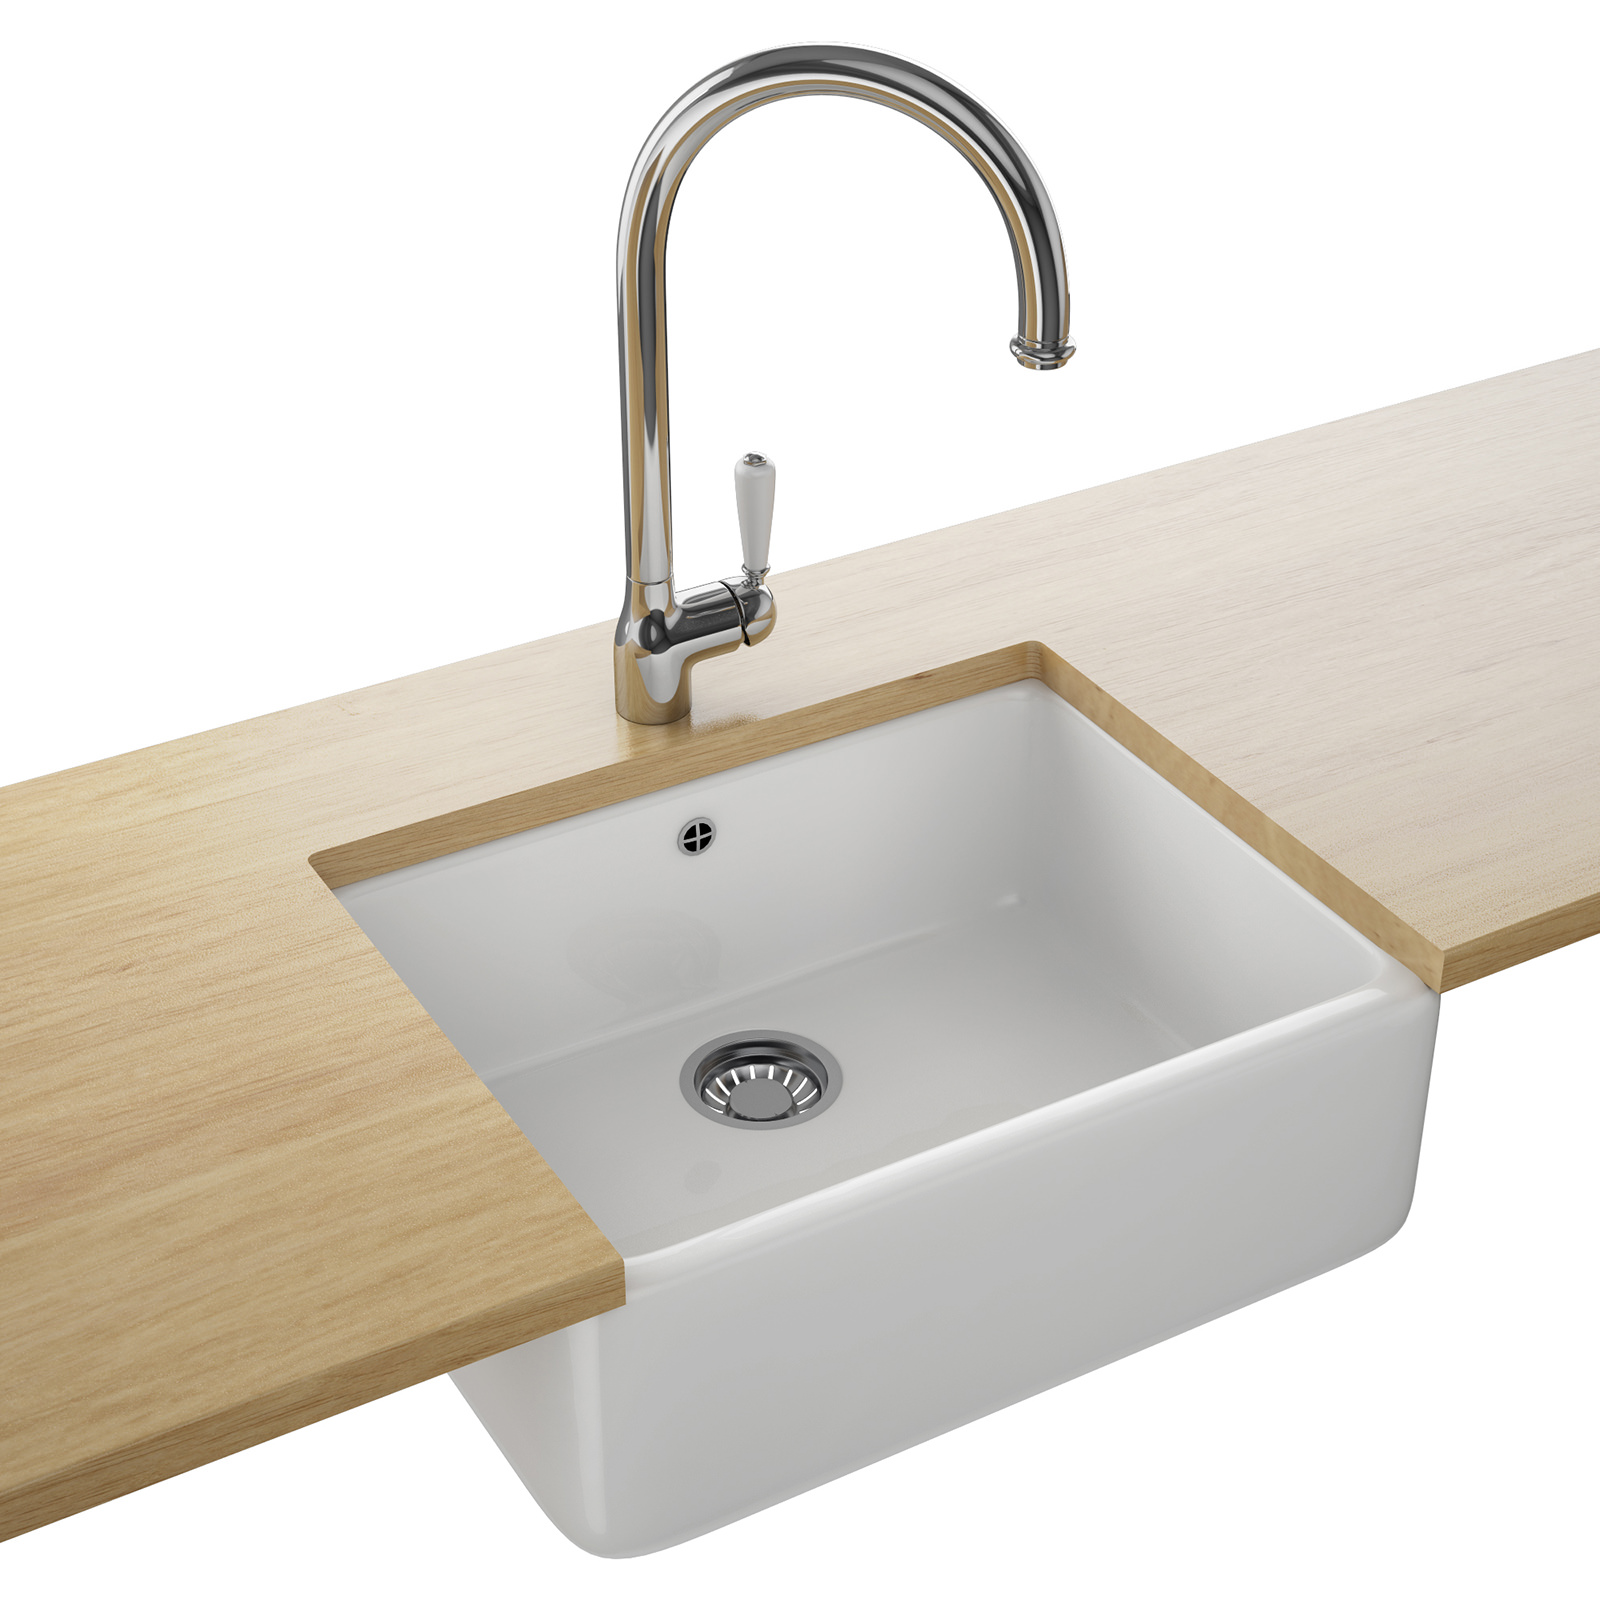 Belfast Kitchen Sink : Franke Belfast VBK 710 Ceramic 1.0 Bowl White Kitchen Sink